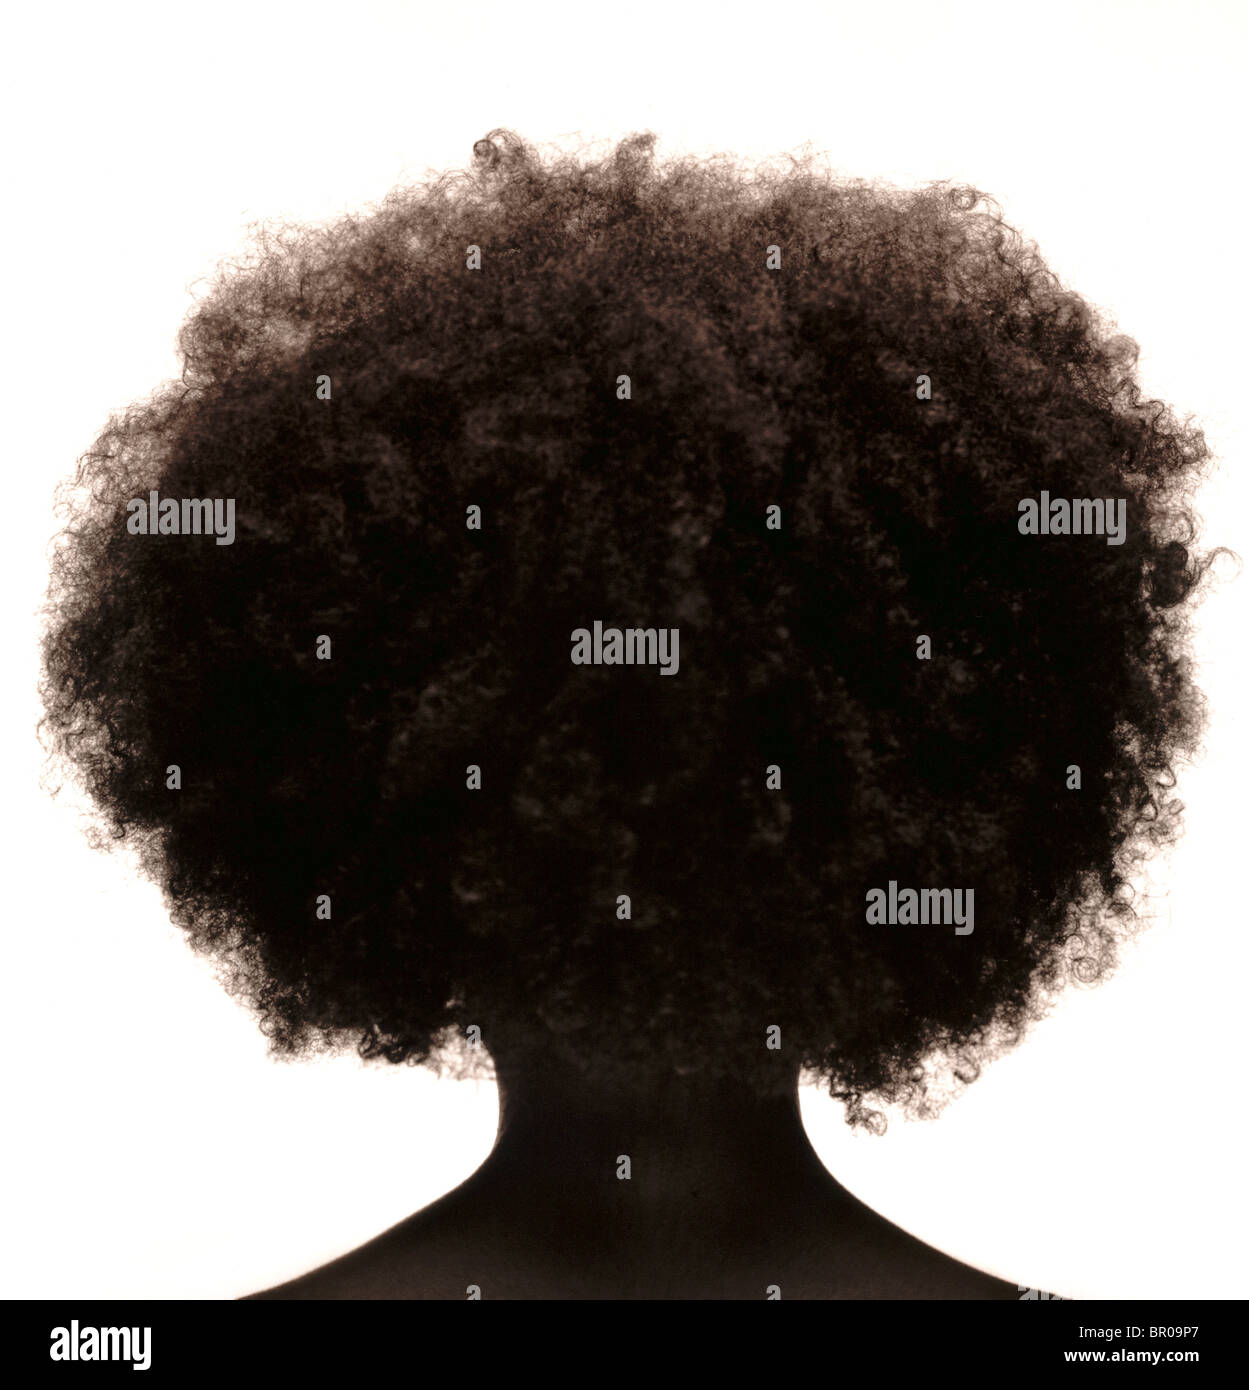 Silhouette of African American womans head with frizzy hair. Stock Photo